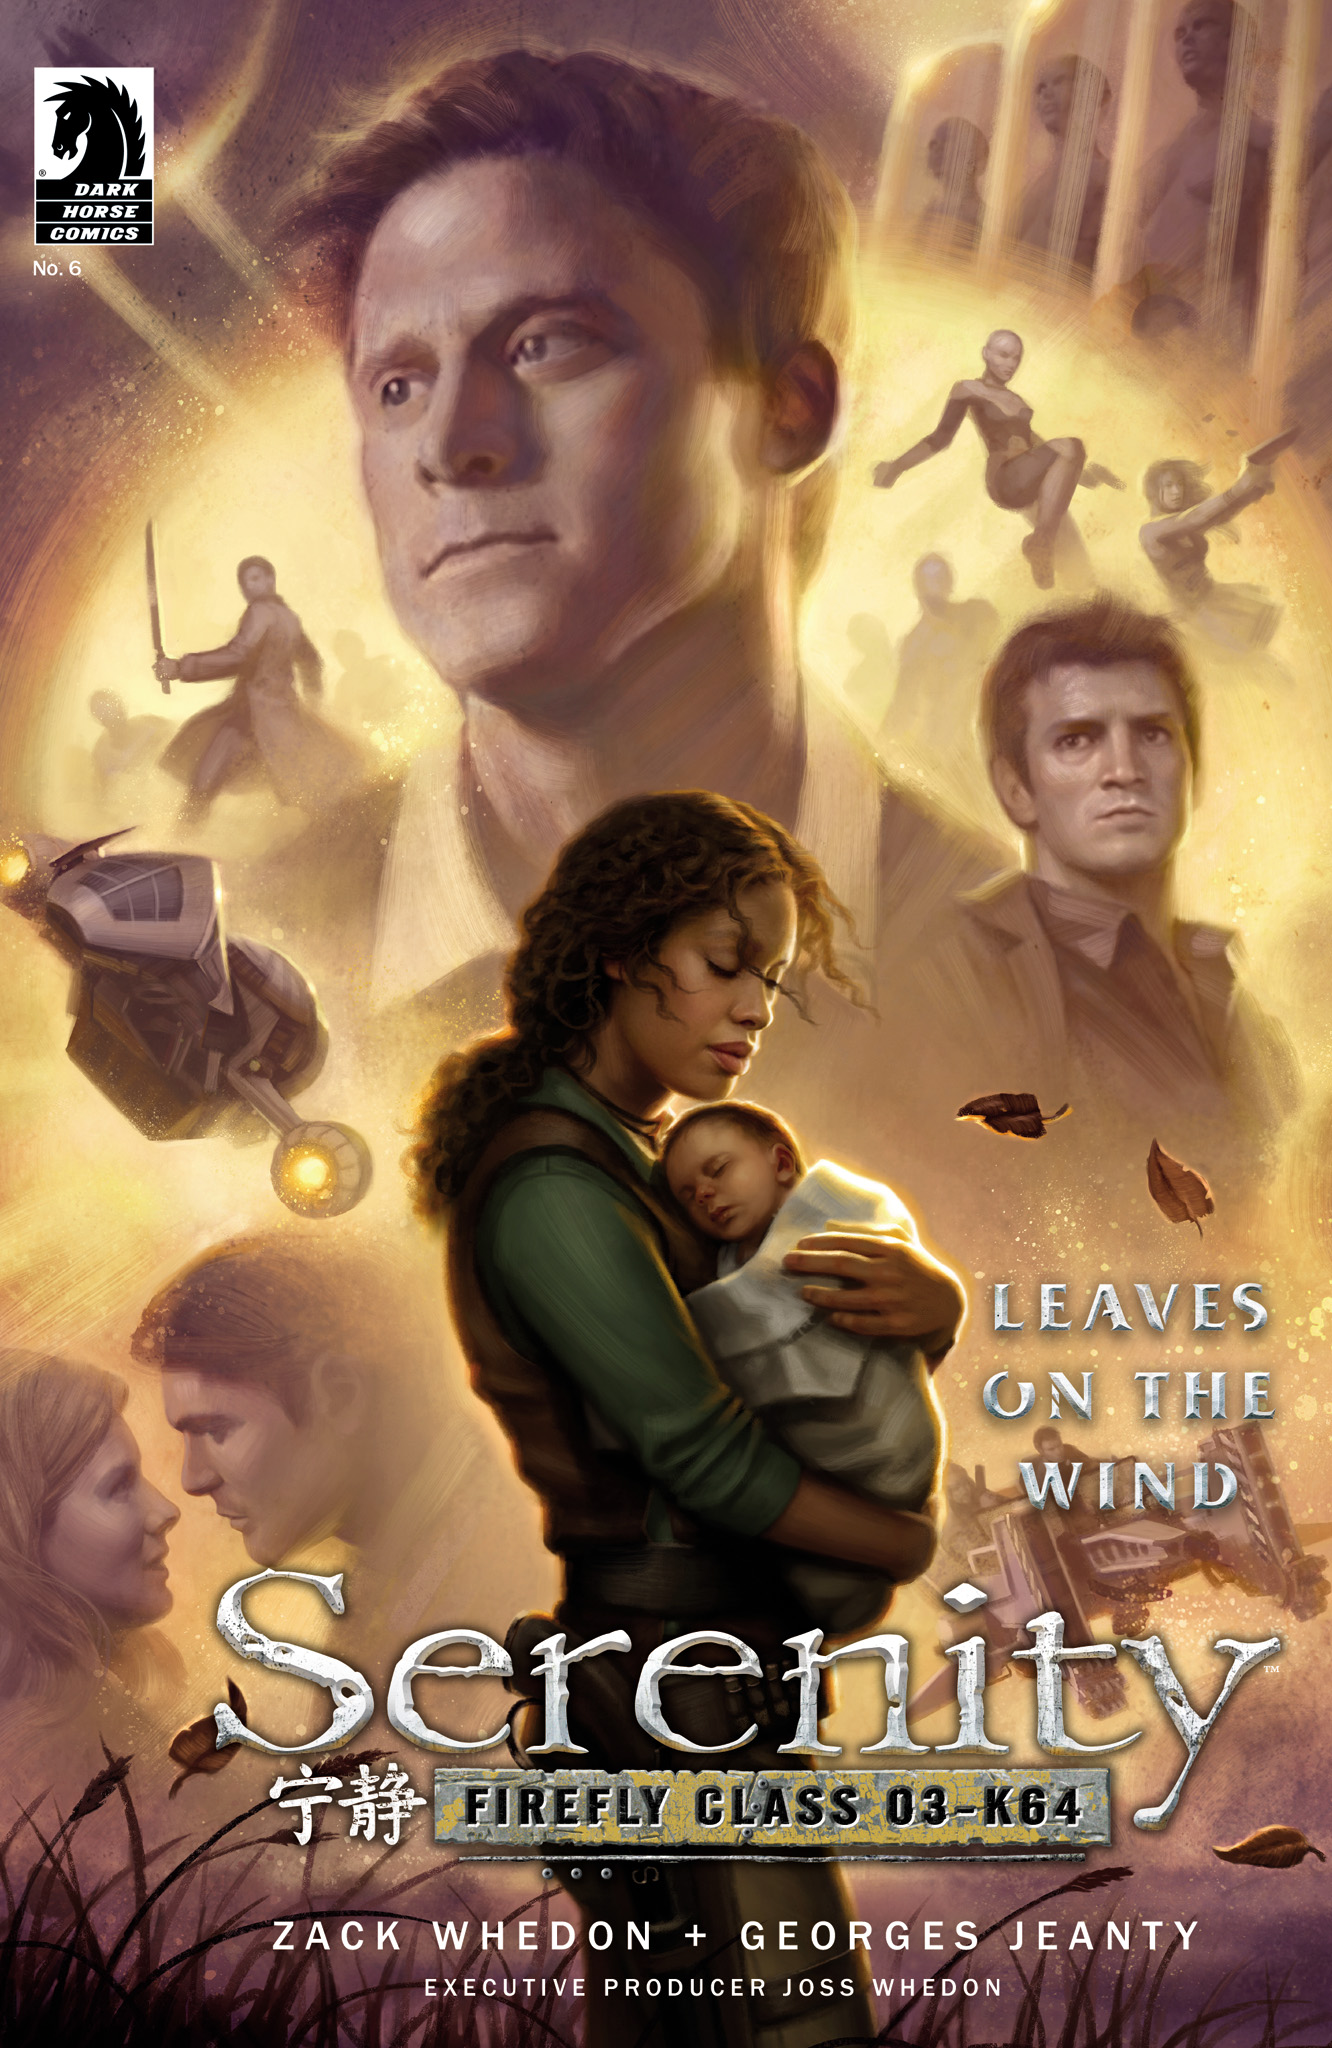 Serenity: Firefly Class 03-K64 Leaves on the Wind 6 Page 1